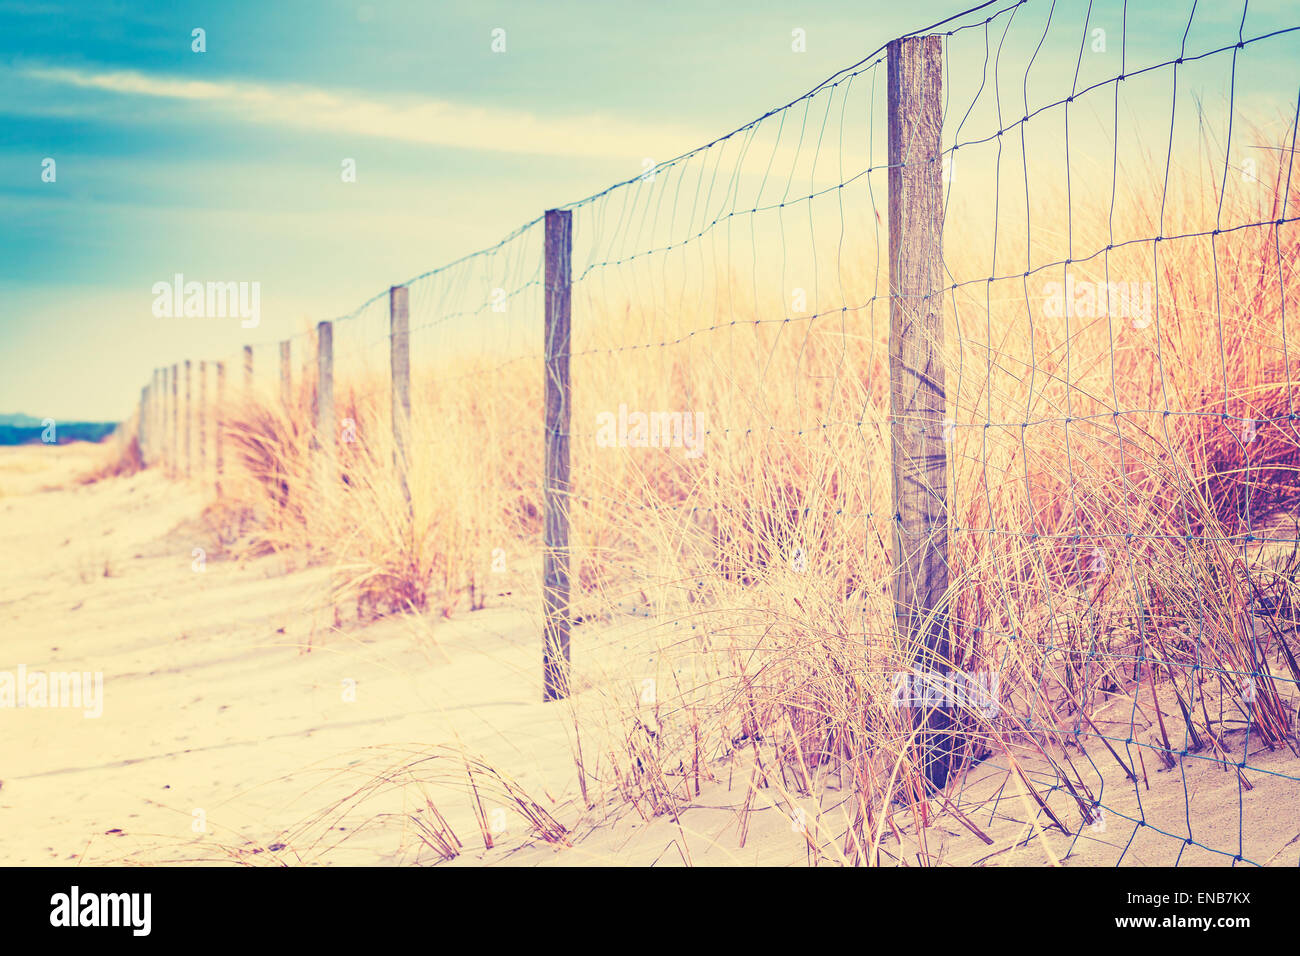 Fence on a dune, nature background, shallow depth of field. - Stock Image